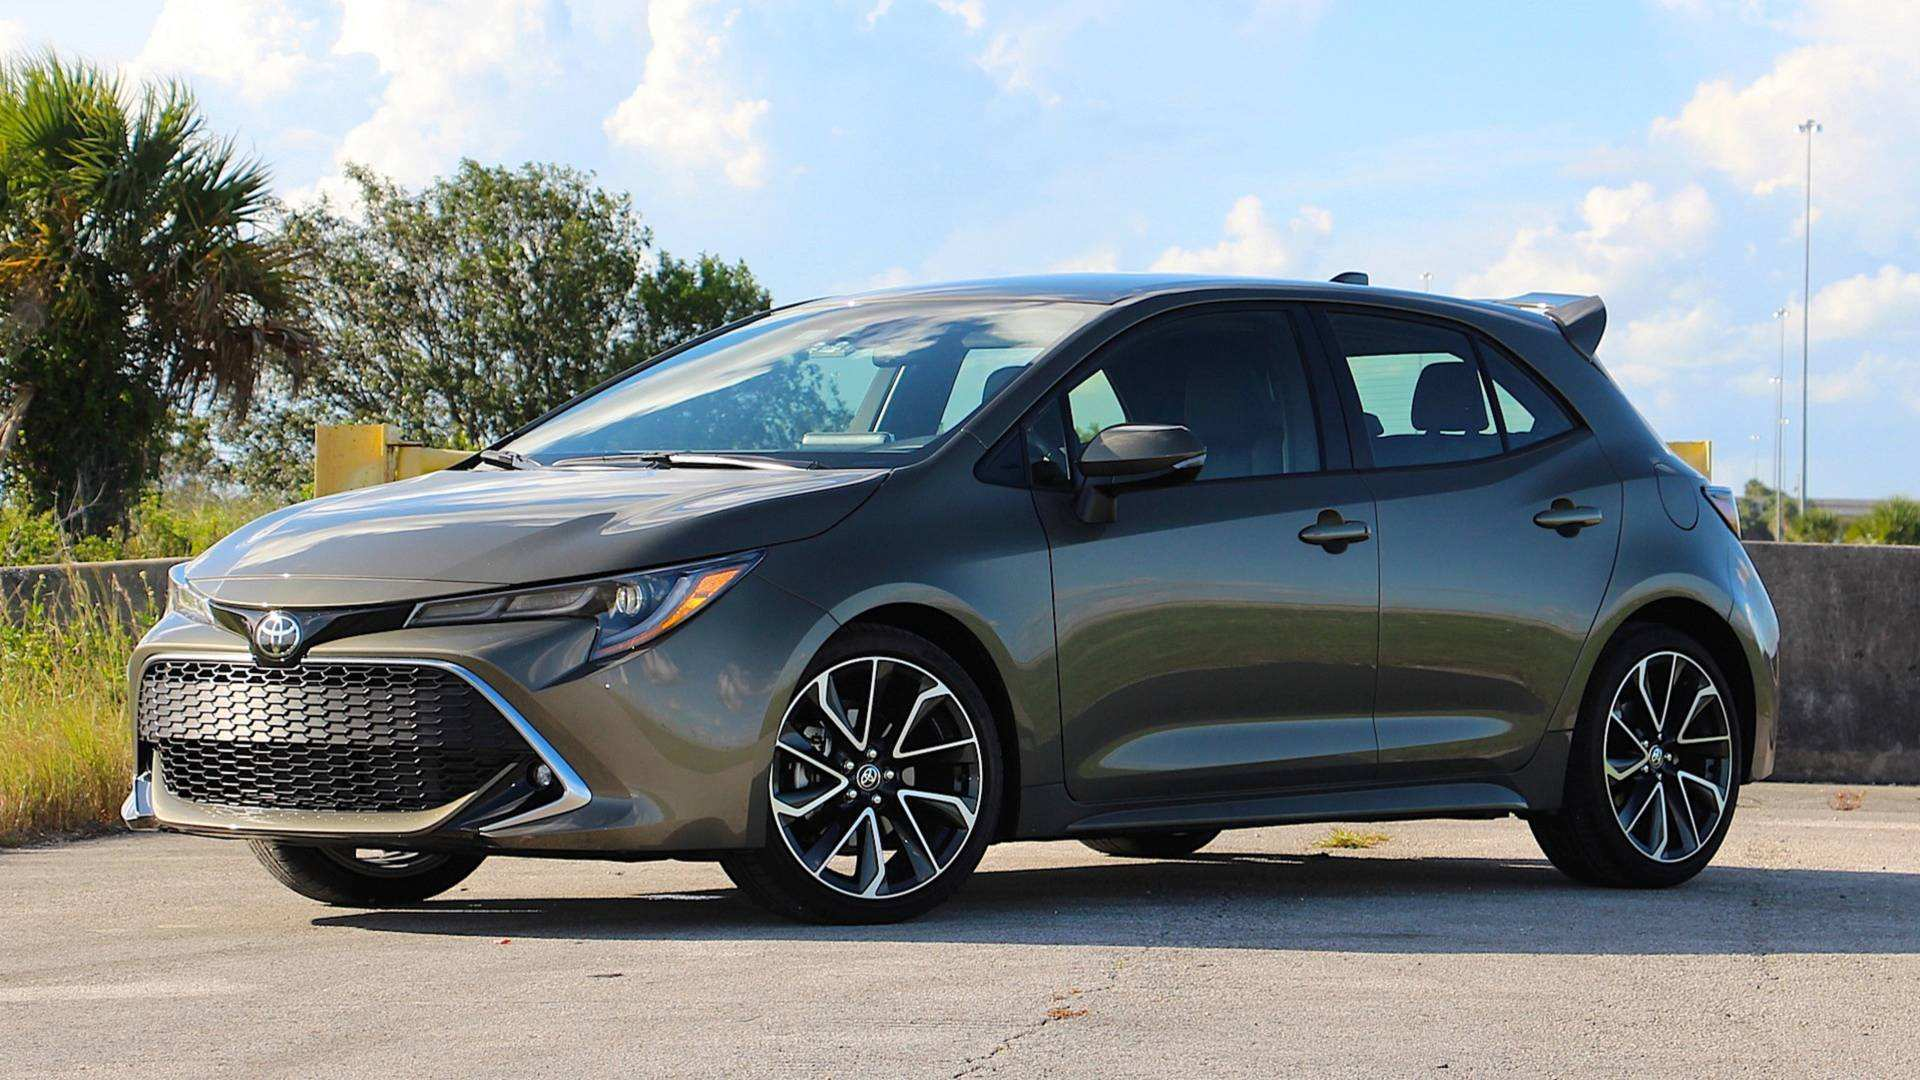 22 New 2019 Toyota Corolla Hatchback Review Configurations with 2019 Toyota Corolla Hatchback Review